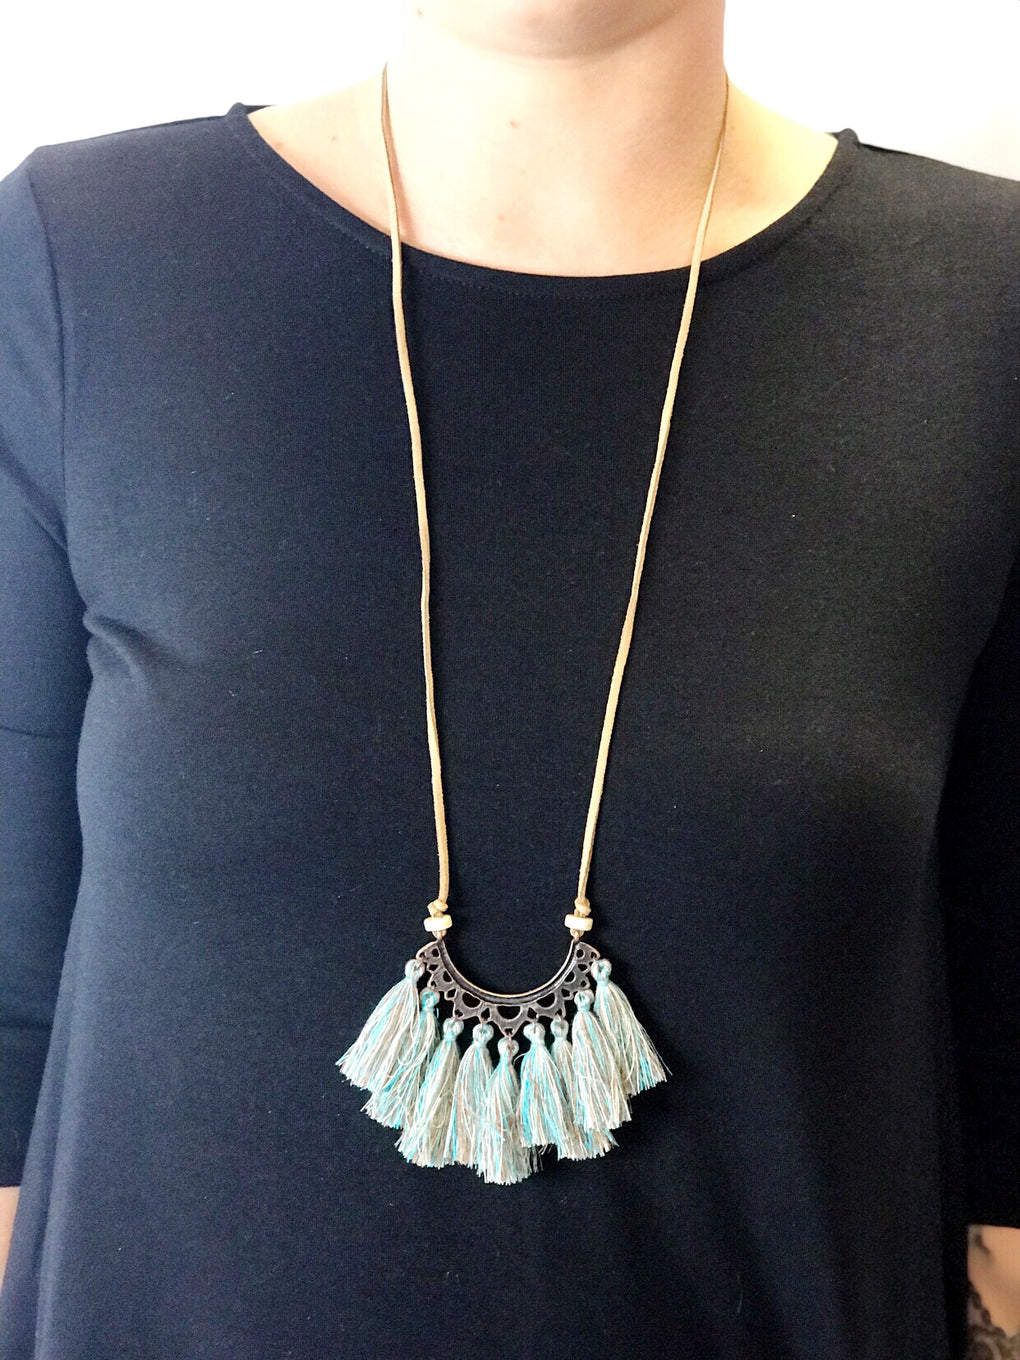 Tassel Fringe Necklace - assorted colors